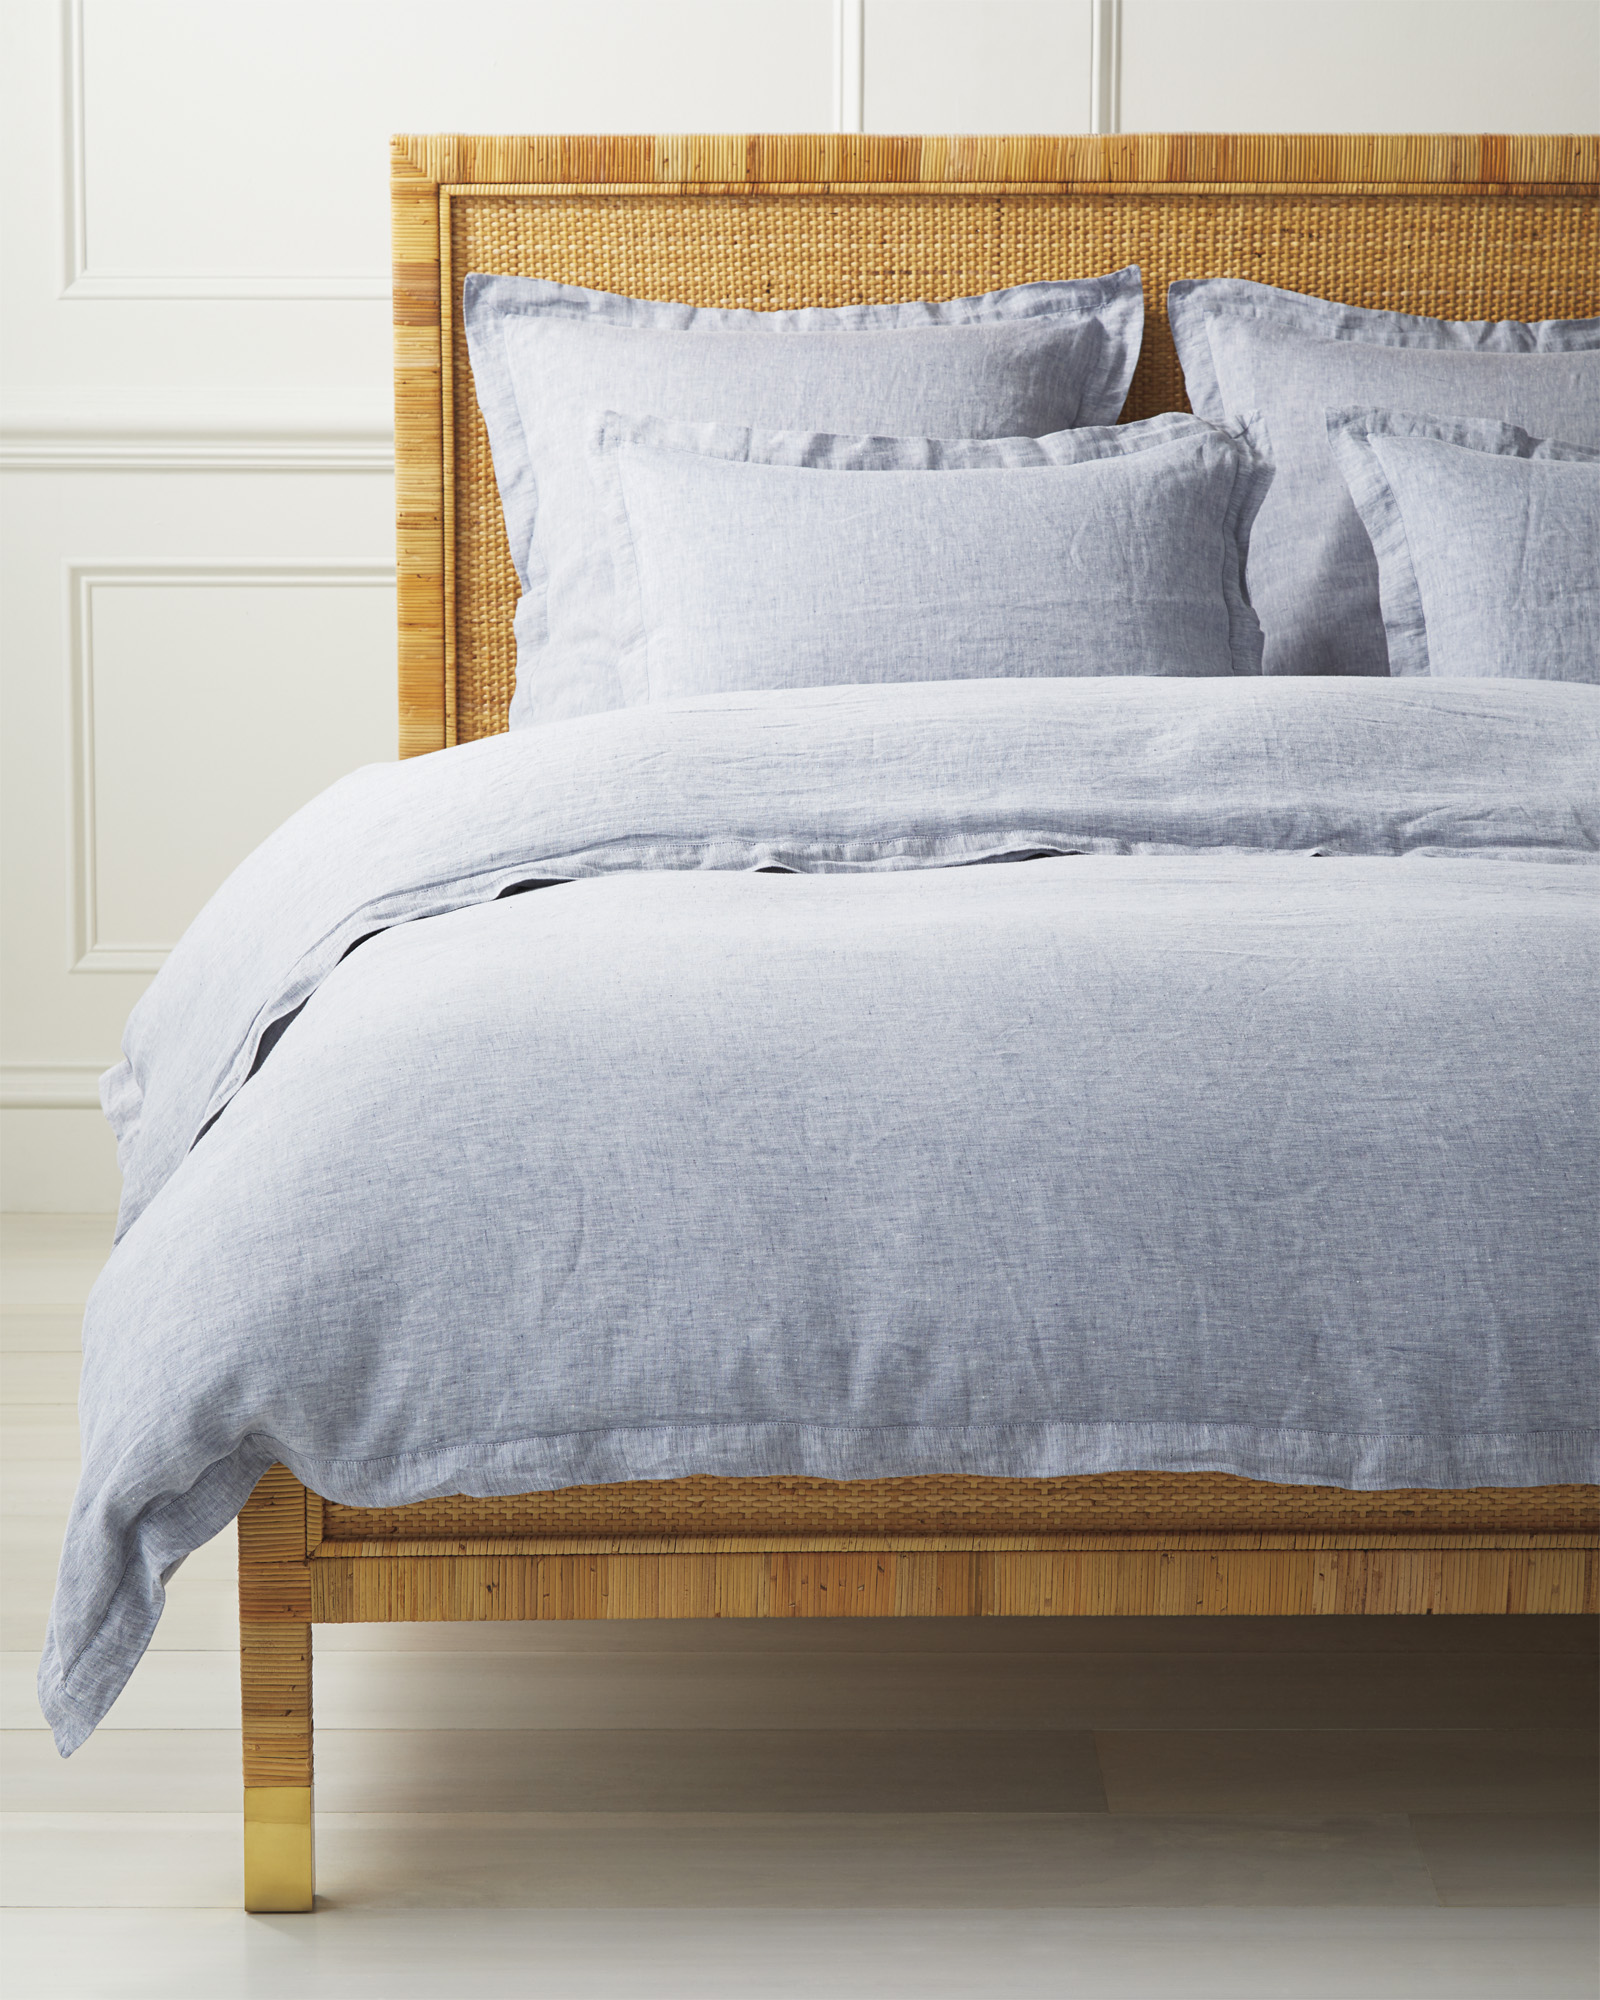 Cavallo Linen Duvet Cover, Navy Chambray